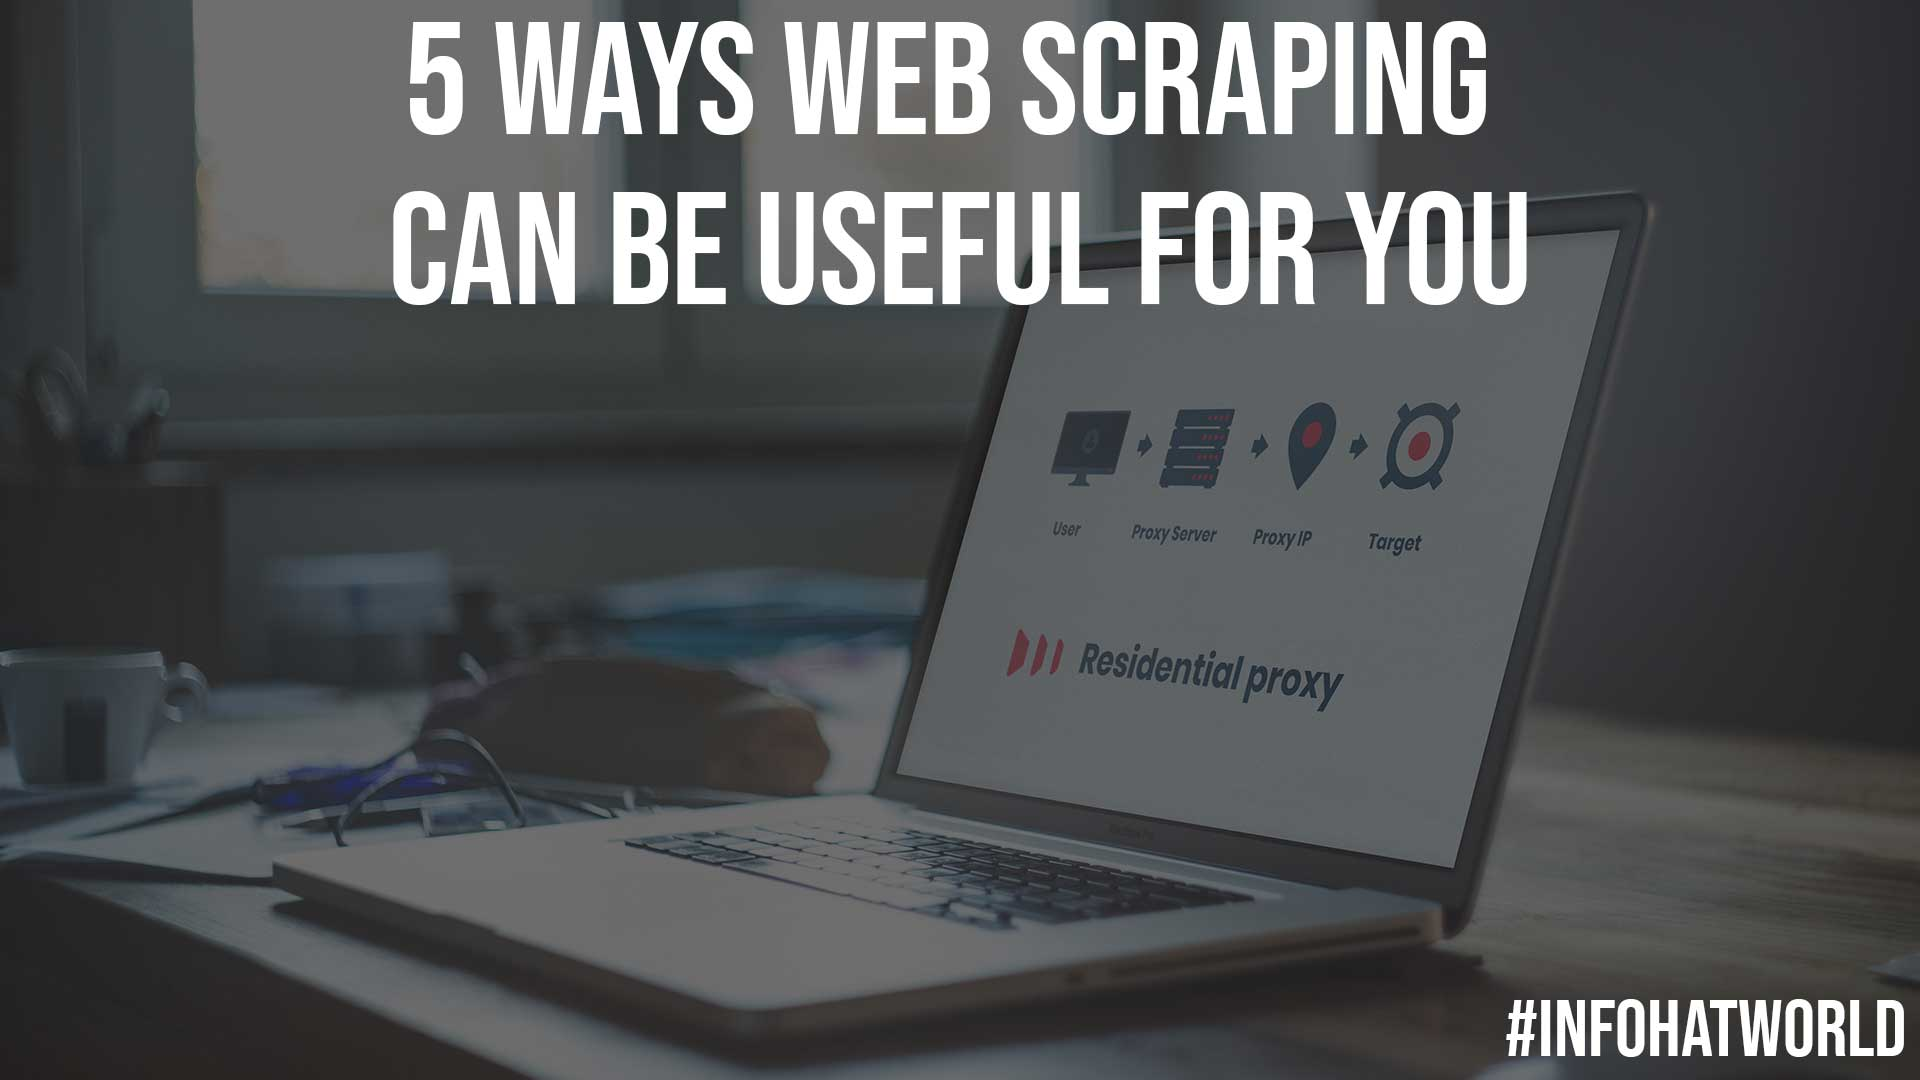 5 Ways Web Scraping Can Be Useful for You